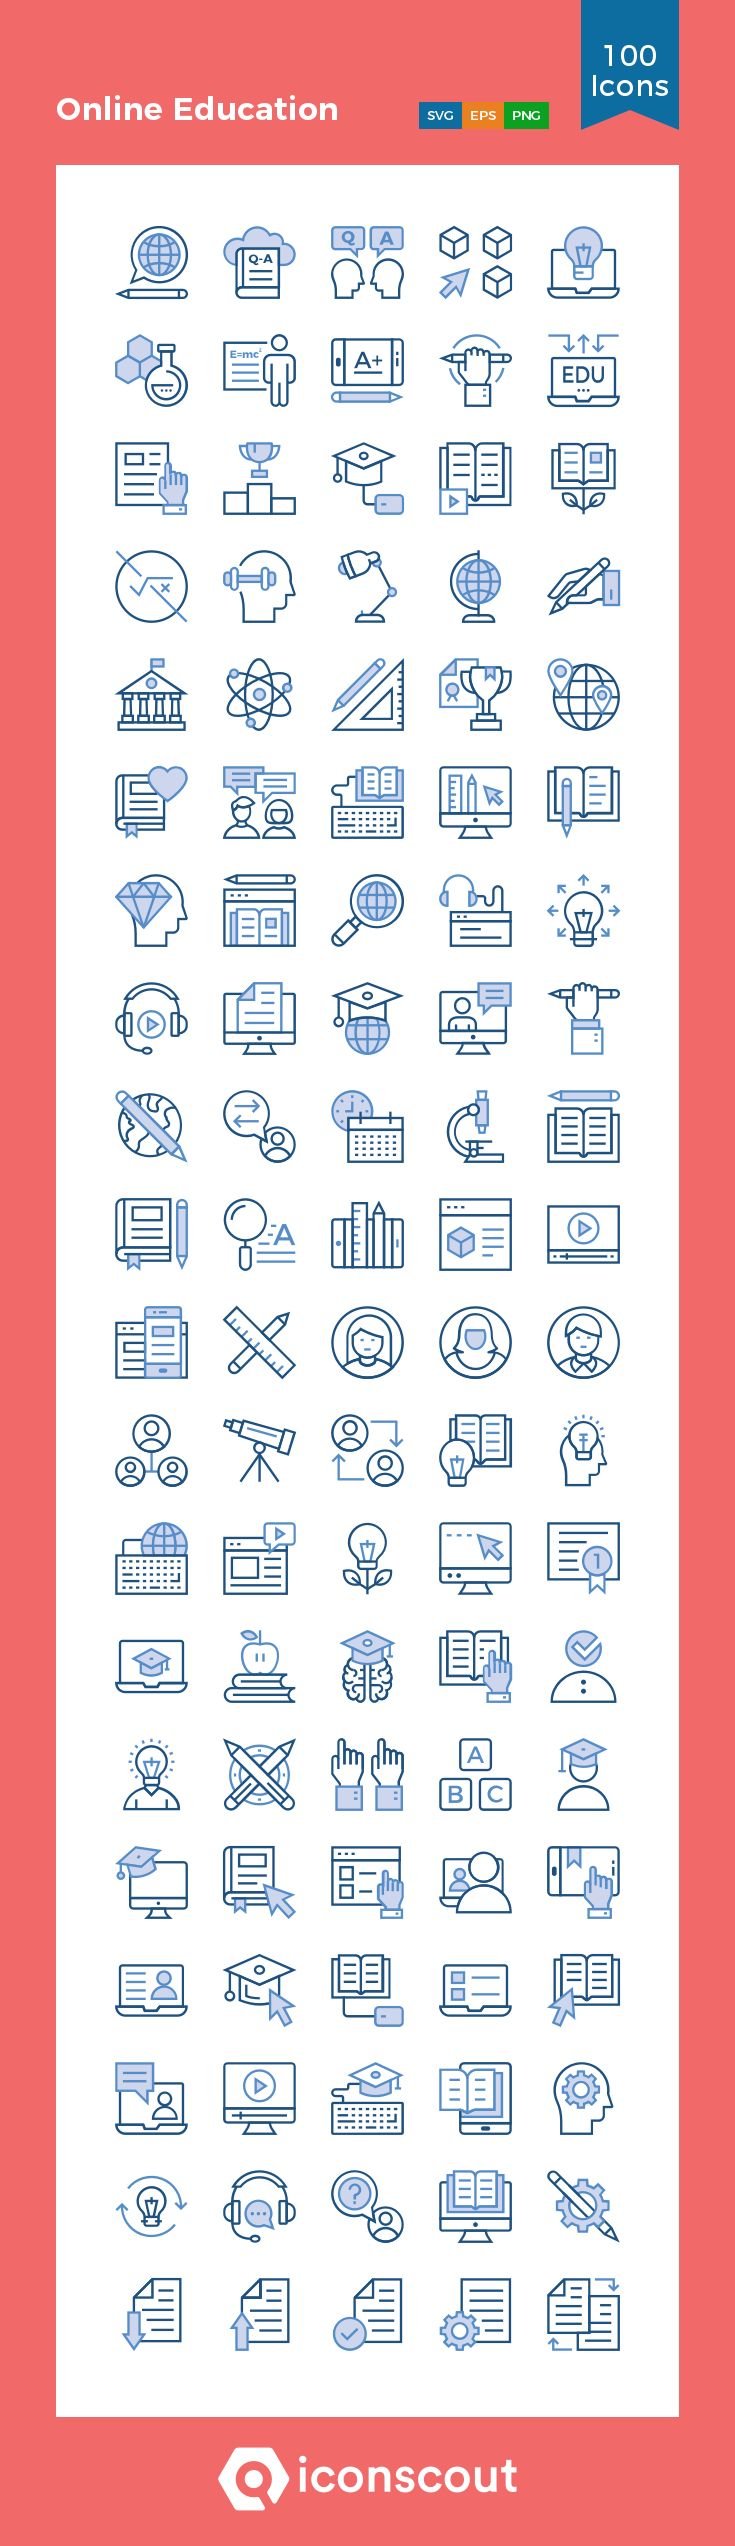 Download Online Education Icon pack - Available in SVG, PNG, EPS, AI & Icon fonts